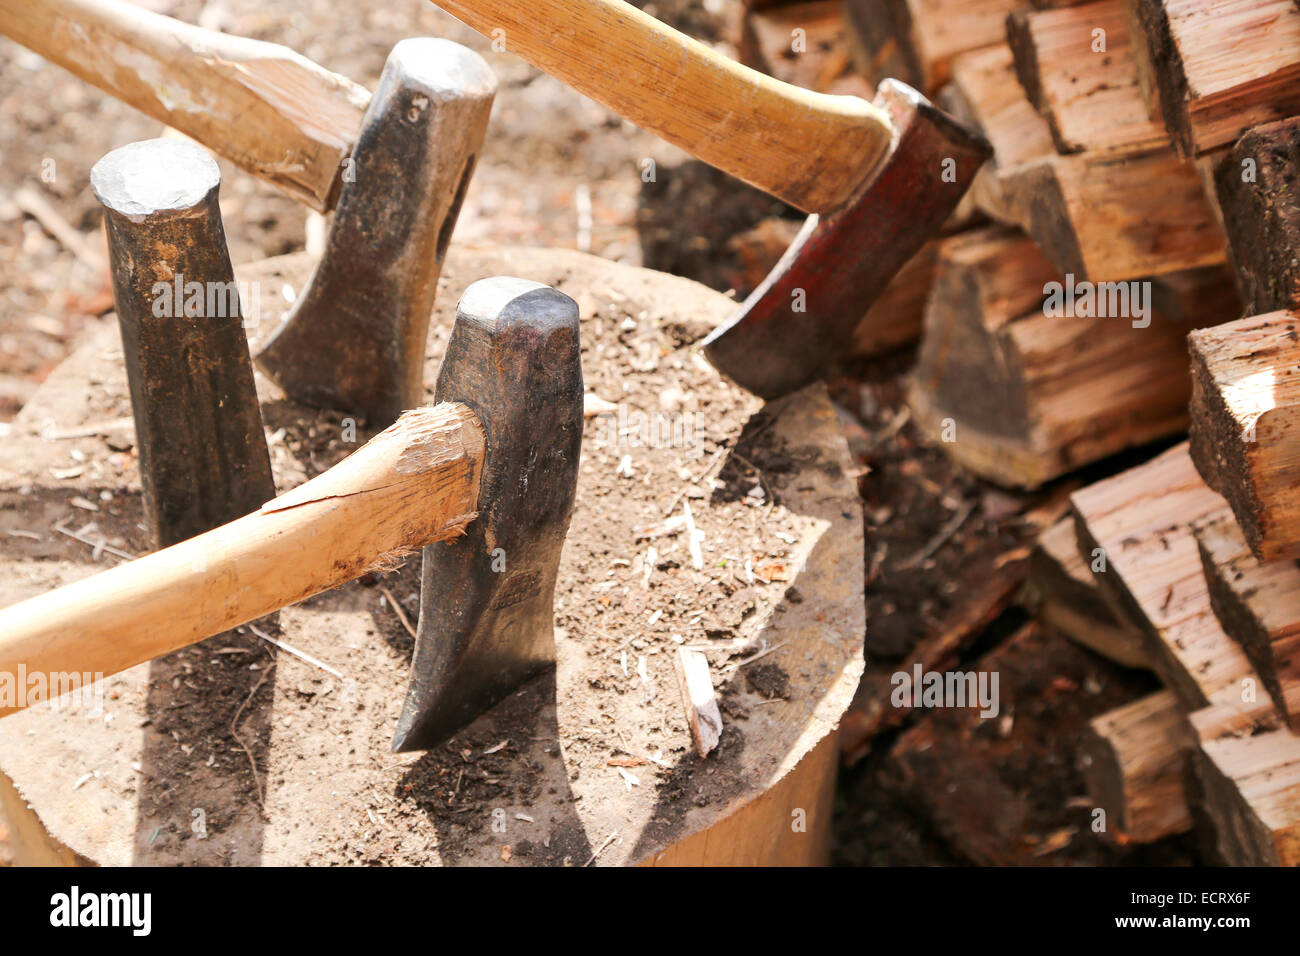 A large block of wood holds several axes for wood splitting during spring clean up weekend at the cottage - Stock Image